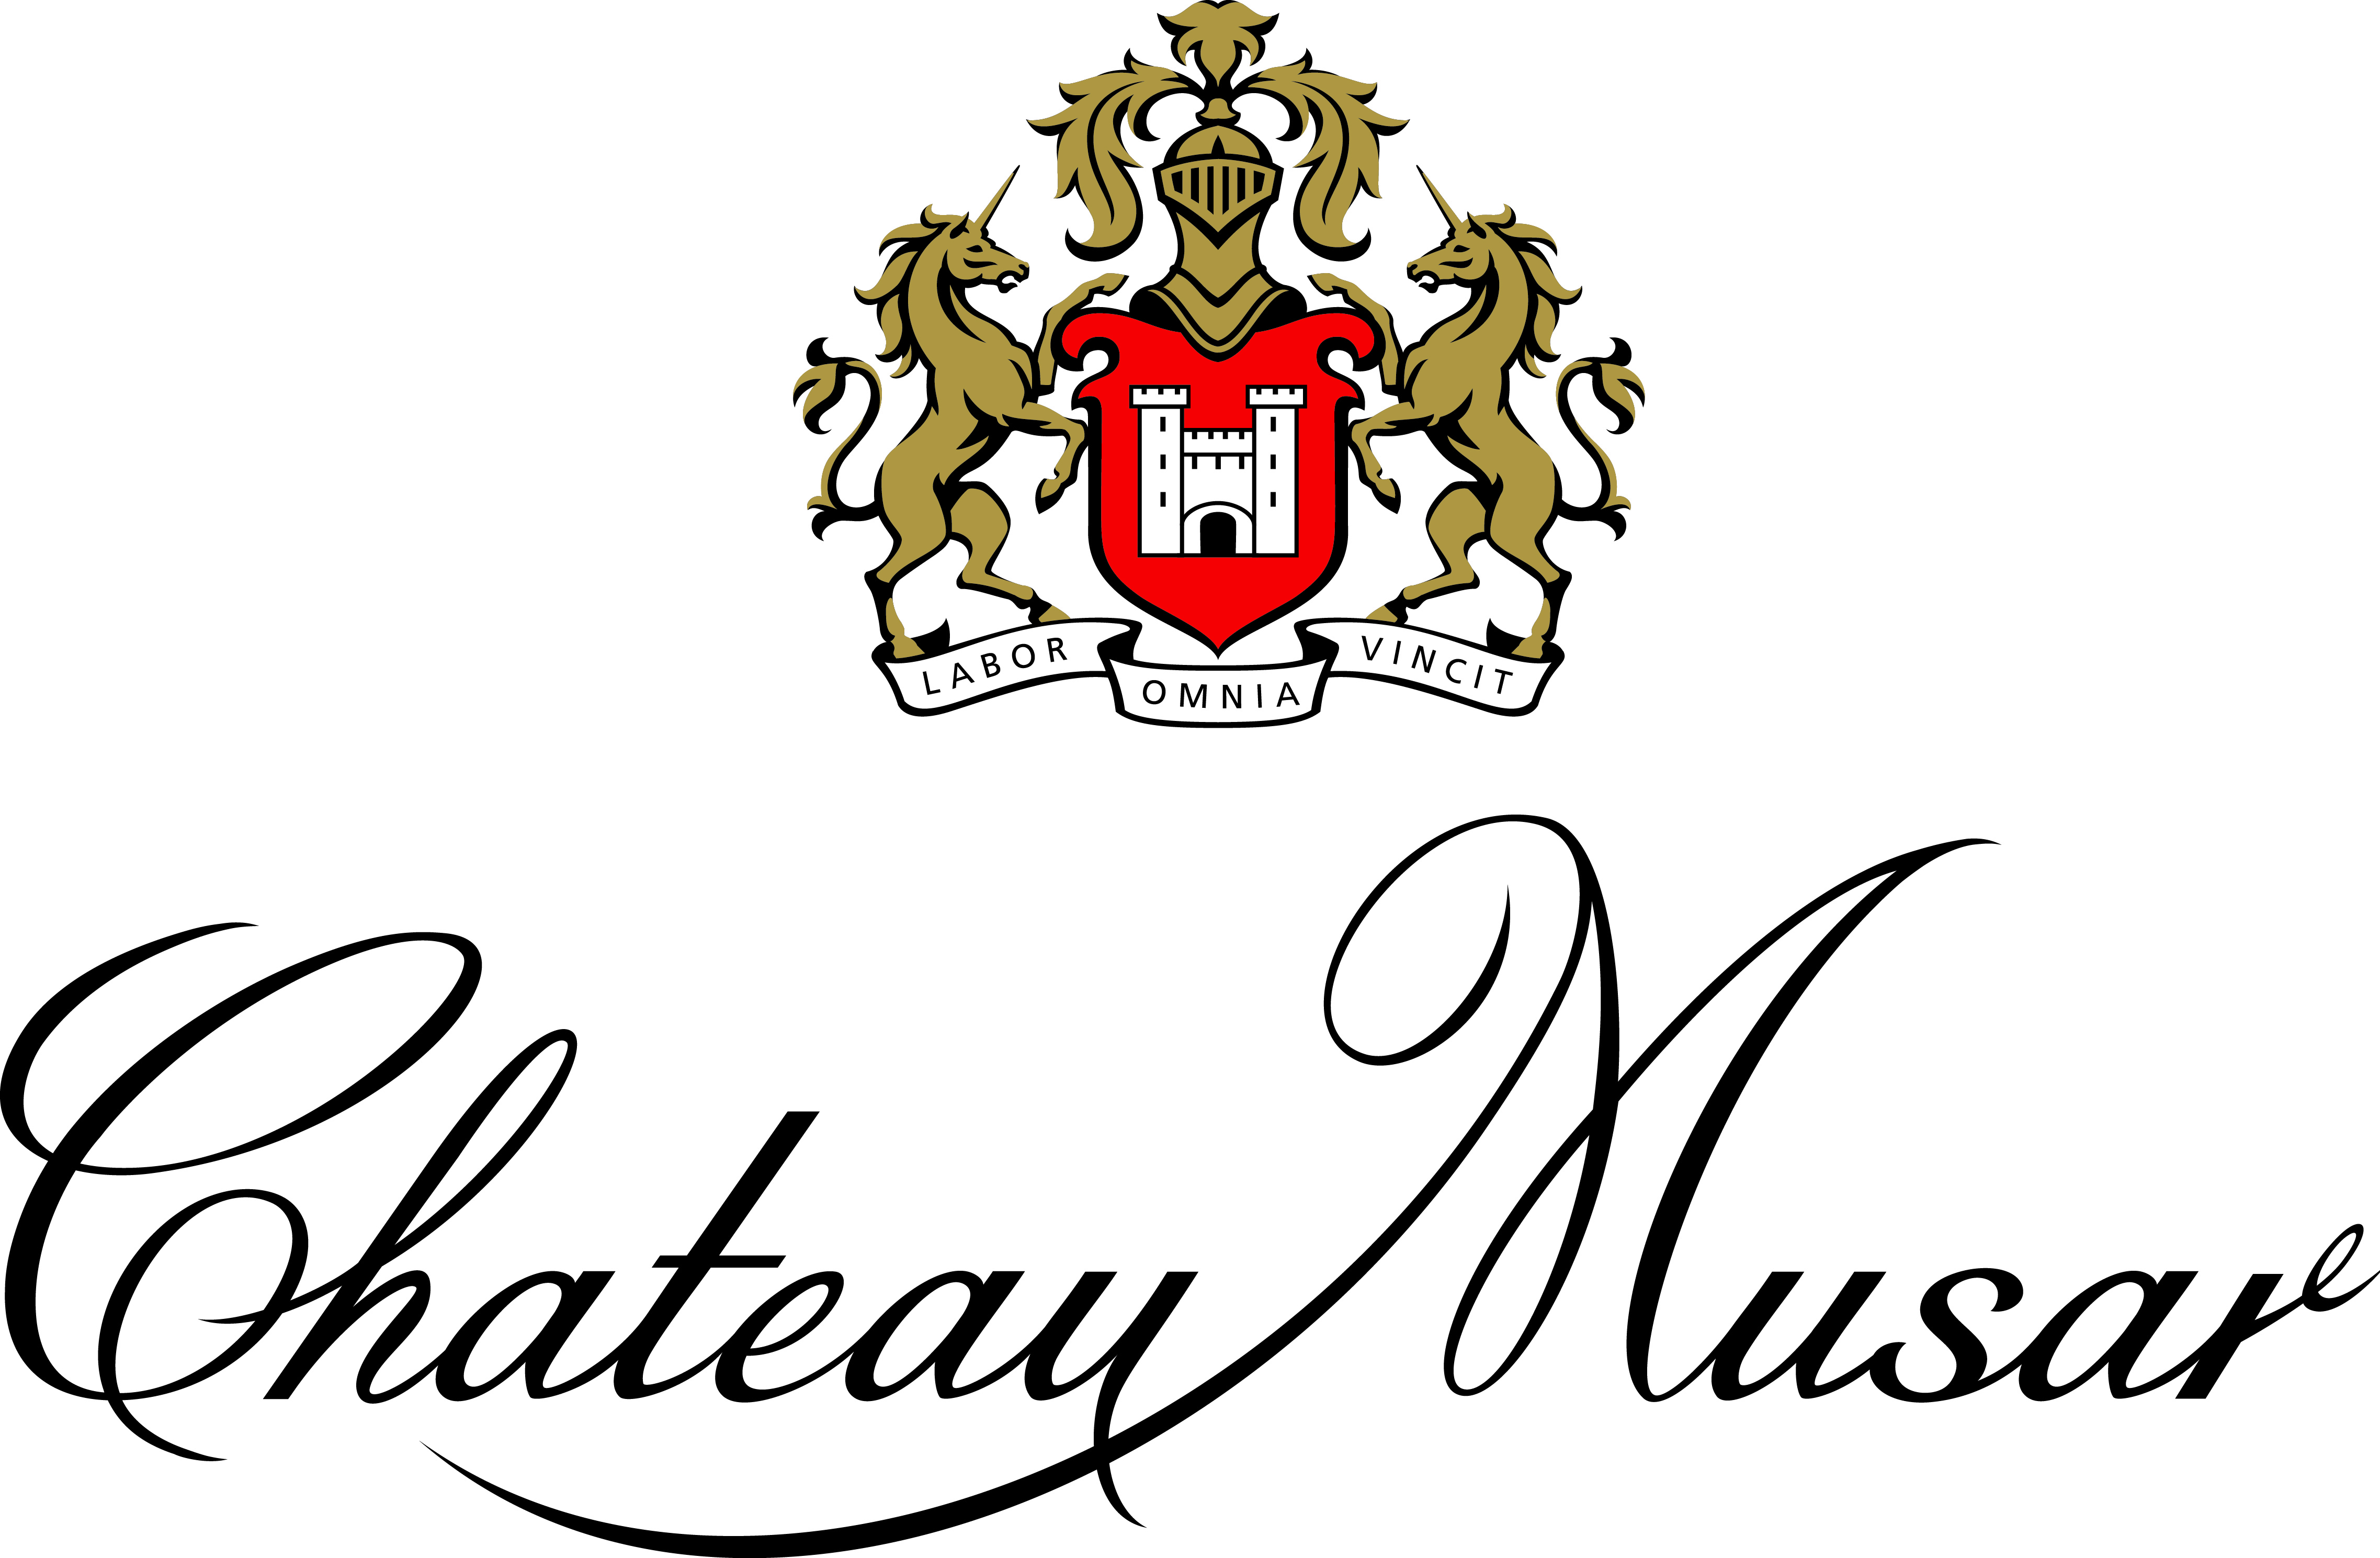 Chateau-Musar-CMYK-HIGH-RES